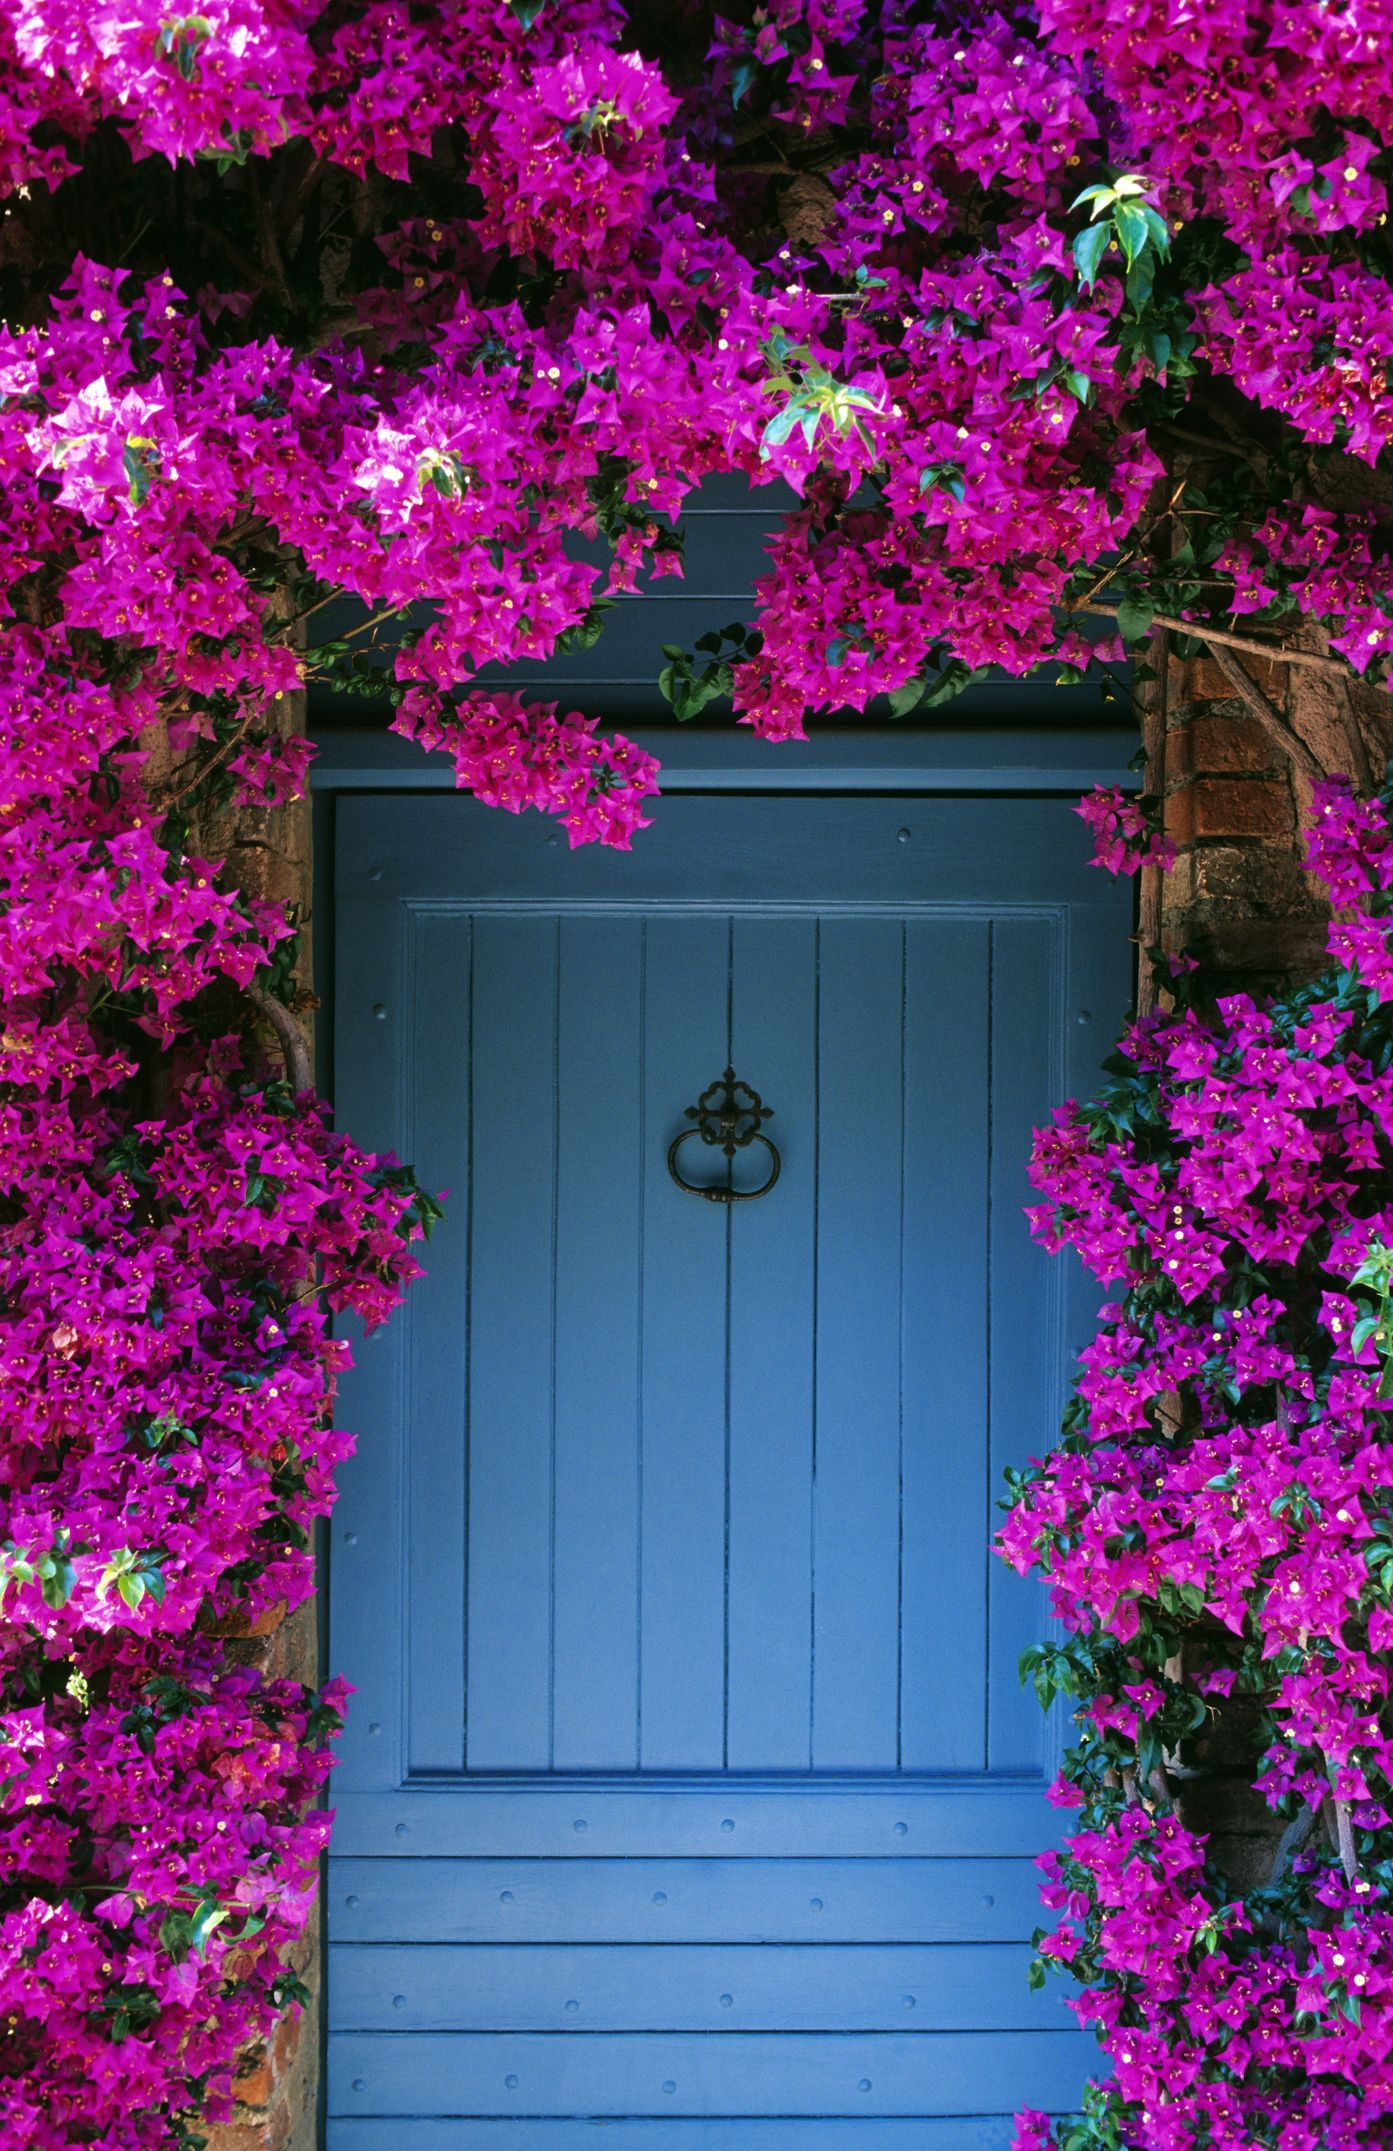 flowering vines bougainvillea